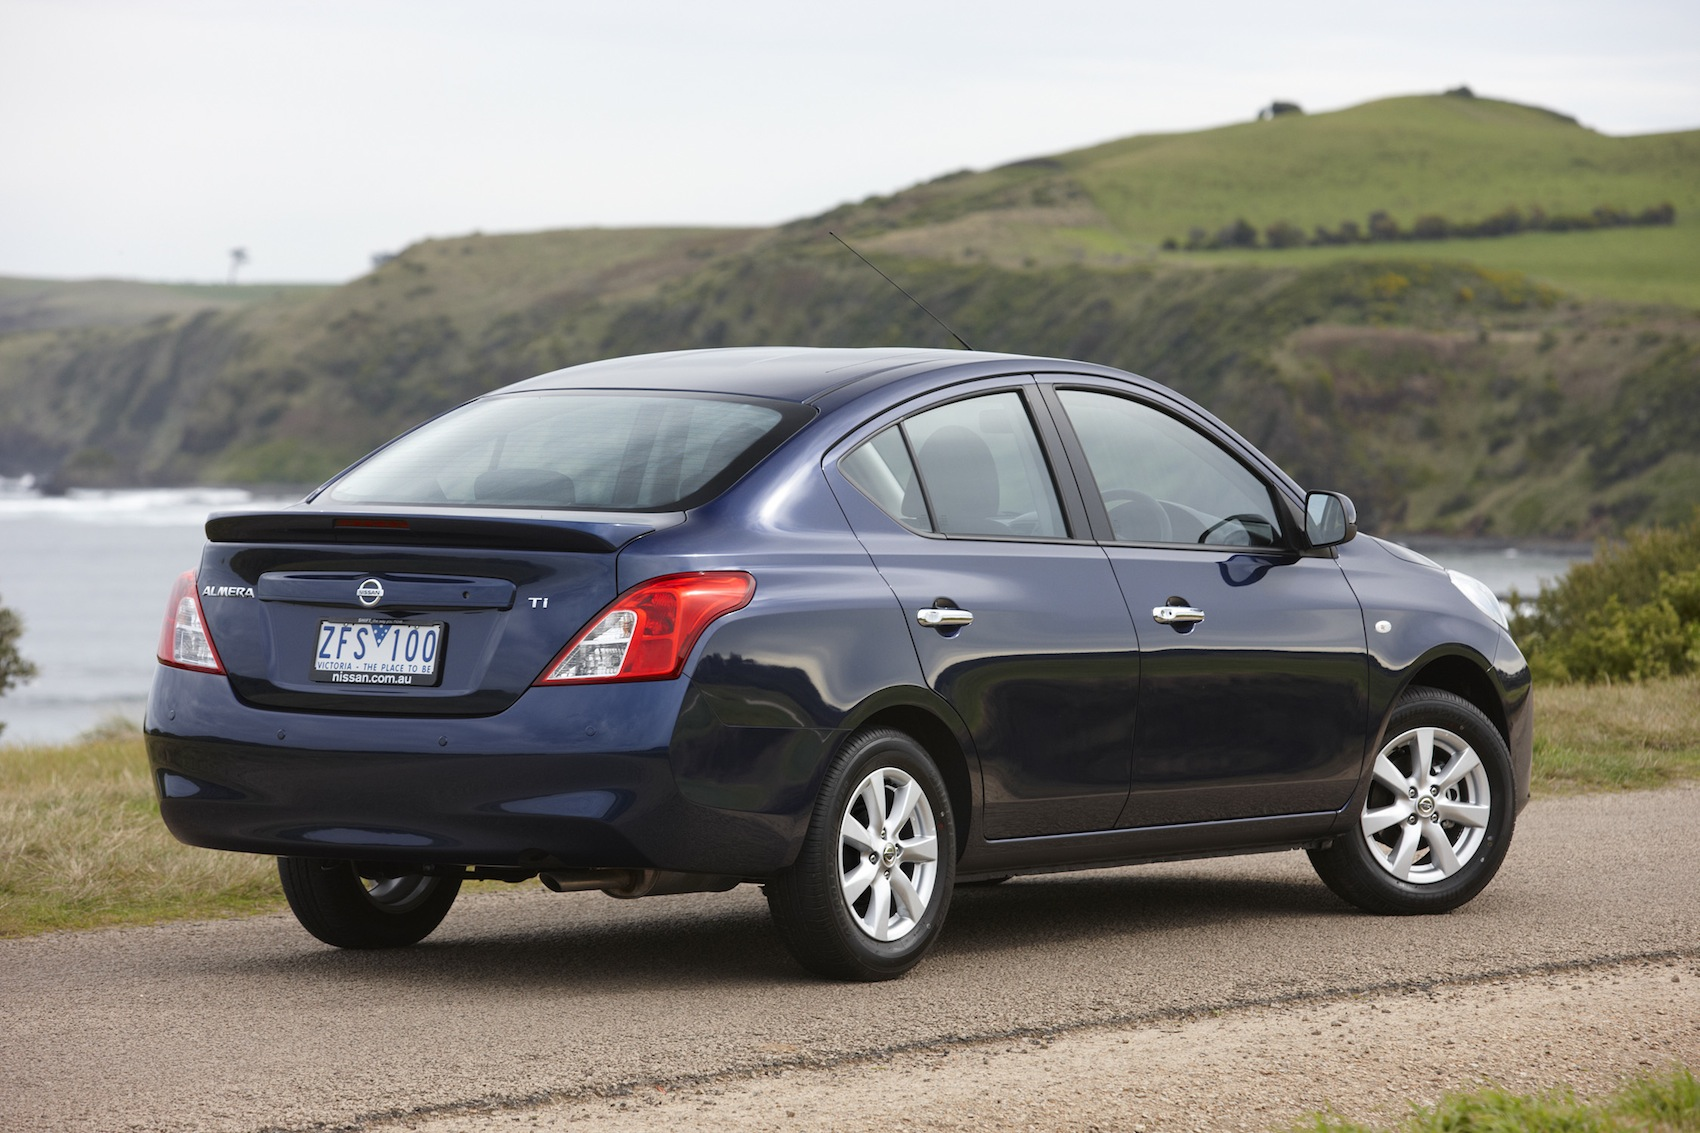 Nissan Almera Australian Prices And Specifications